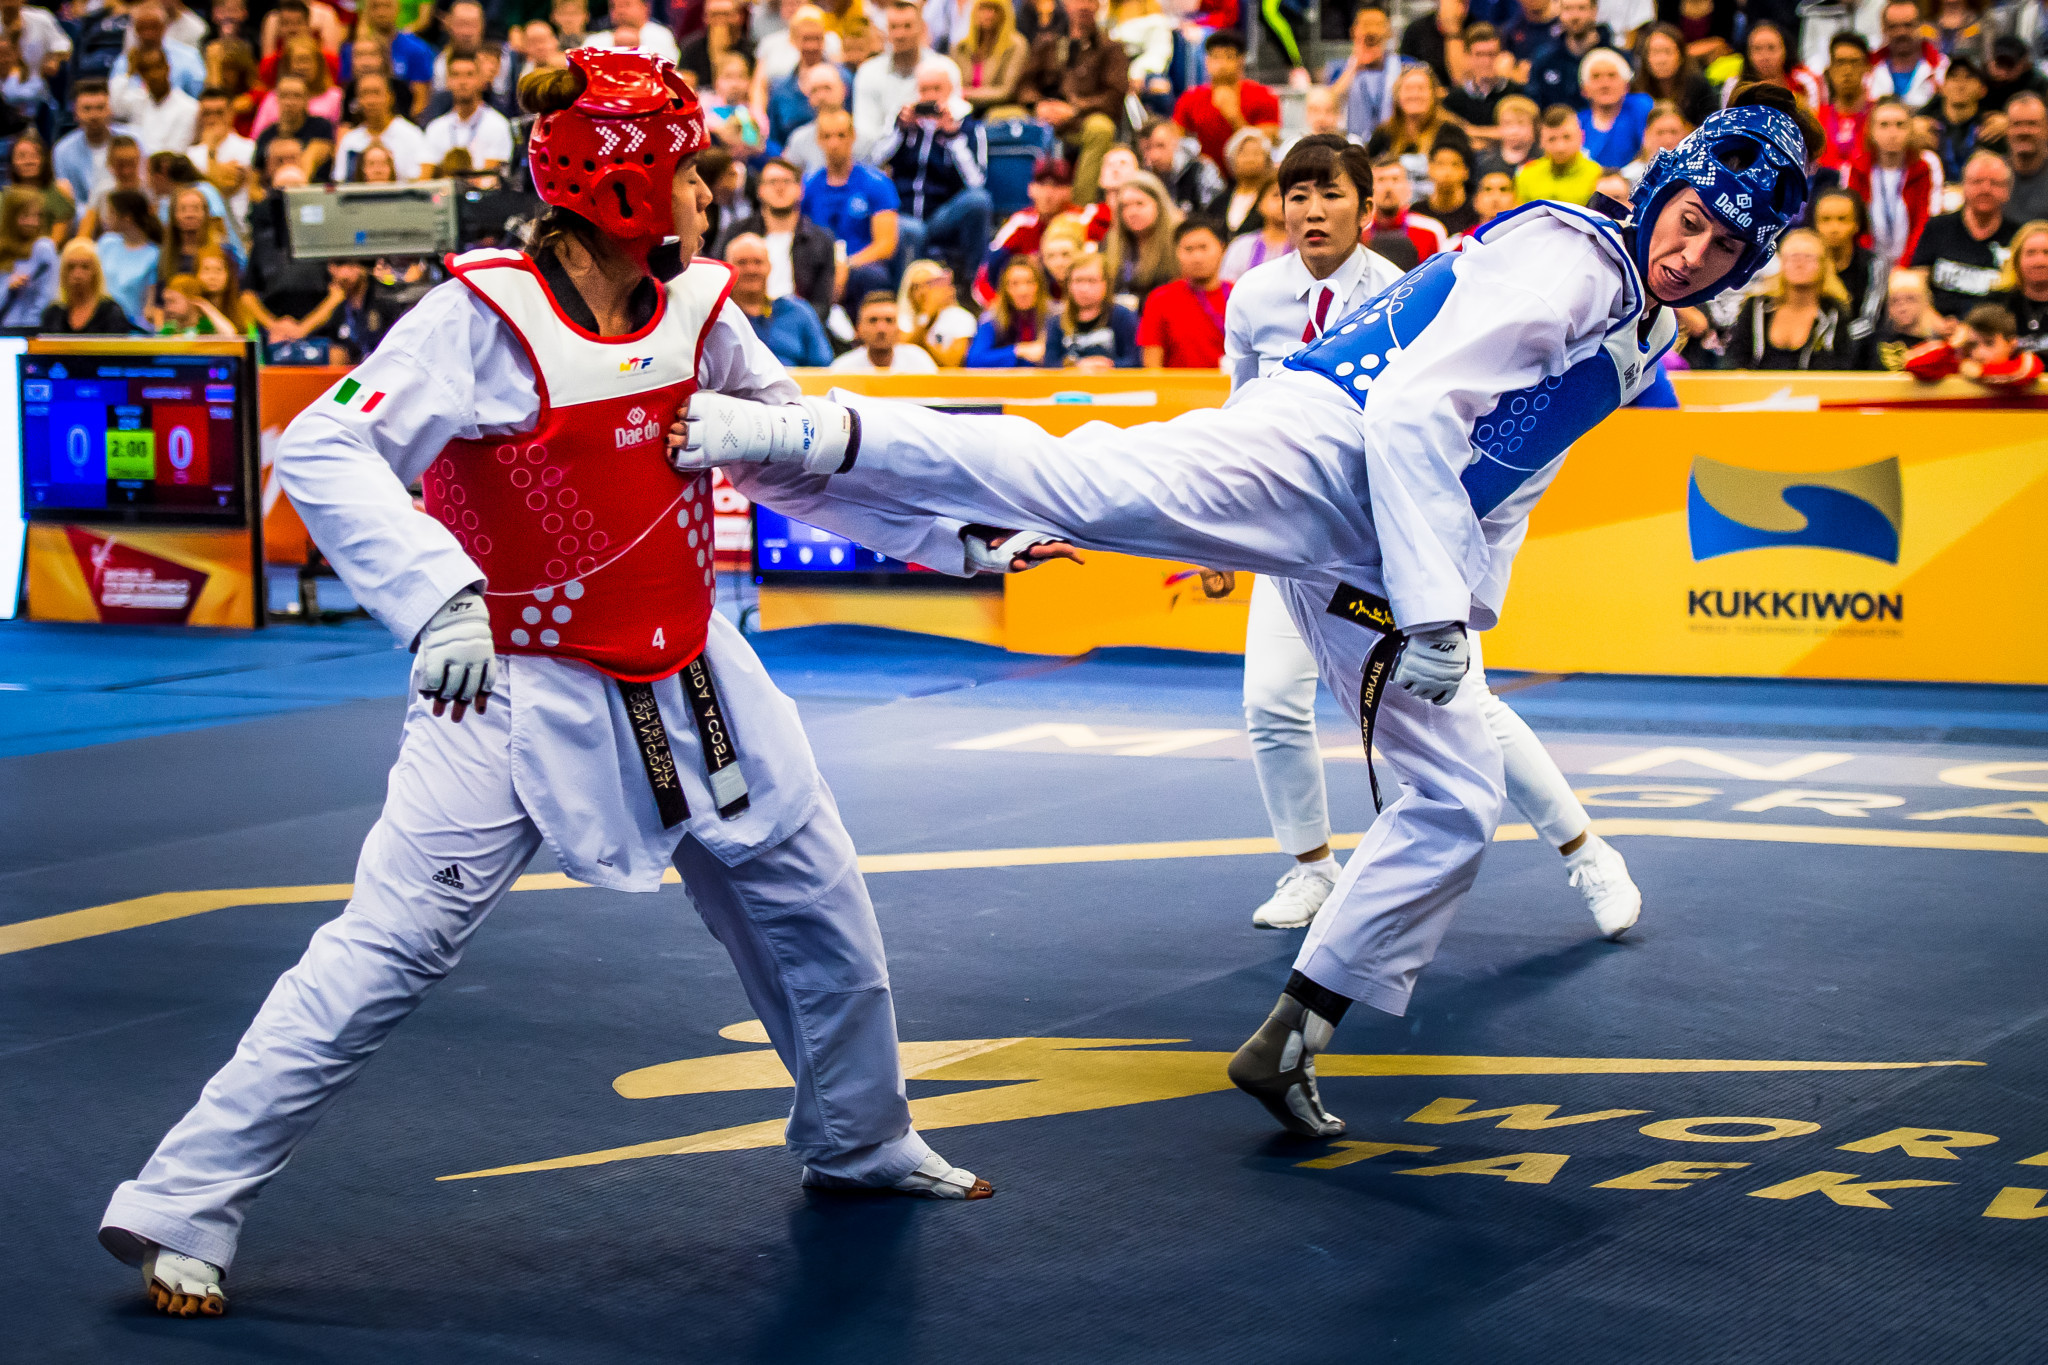 Olympic champion takes gold over home favourite Walkden at Manchester Taekwondo Grand Prix